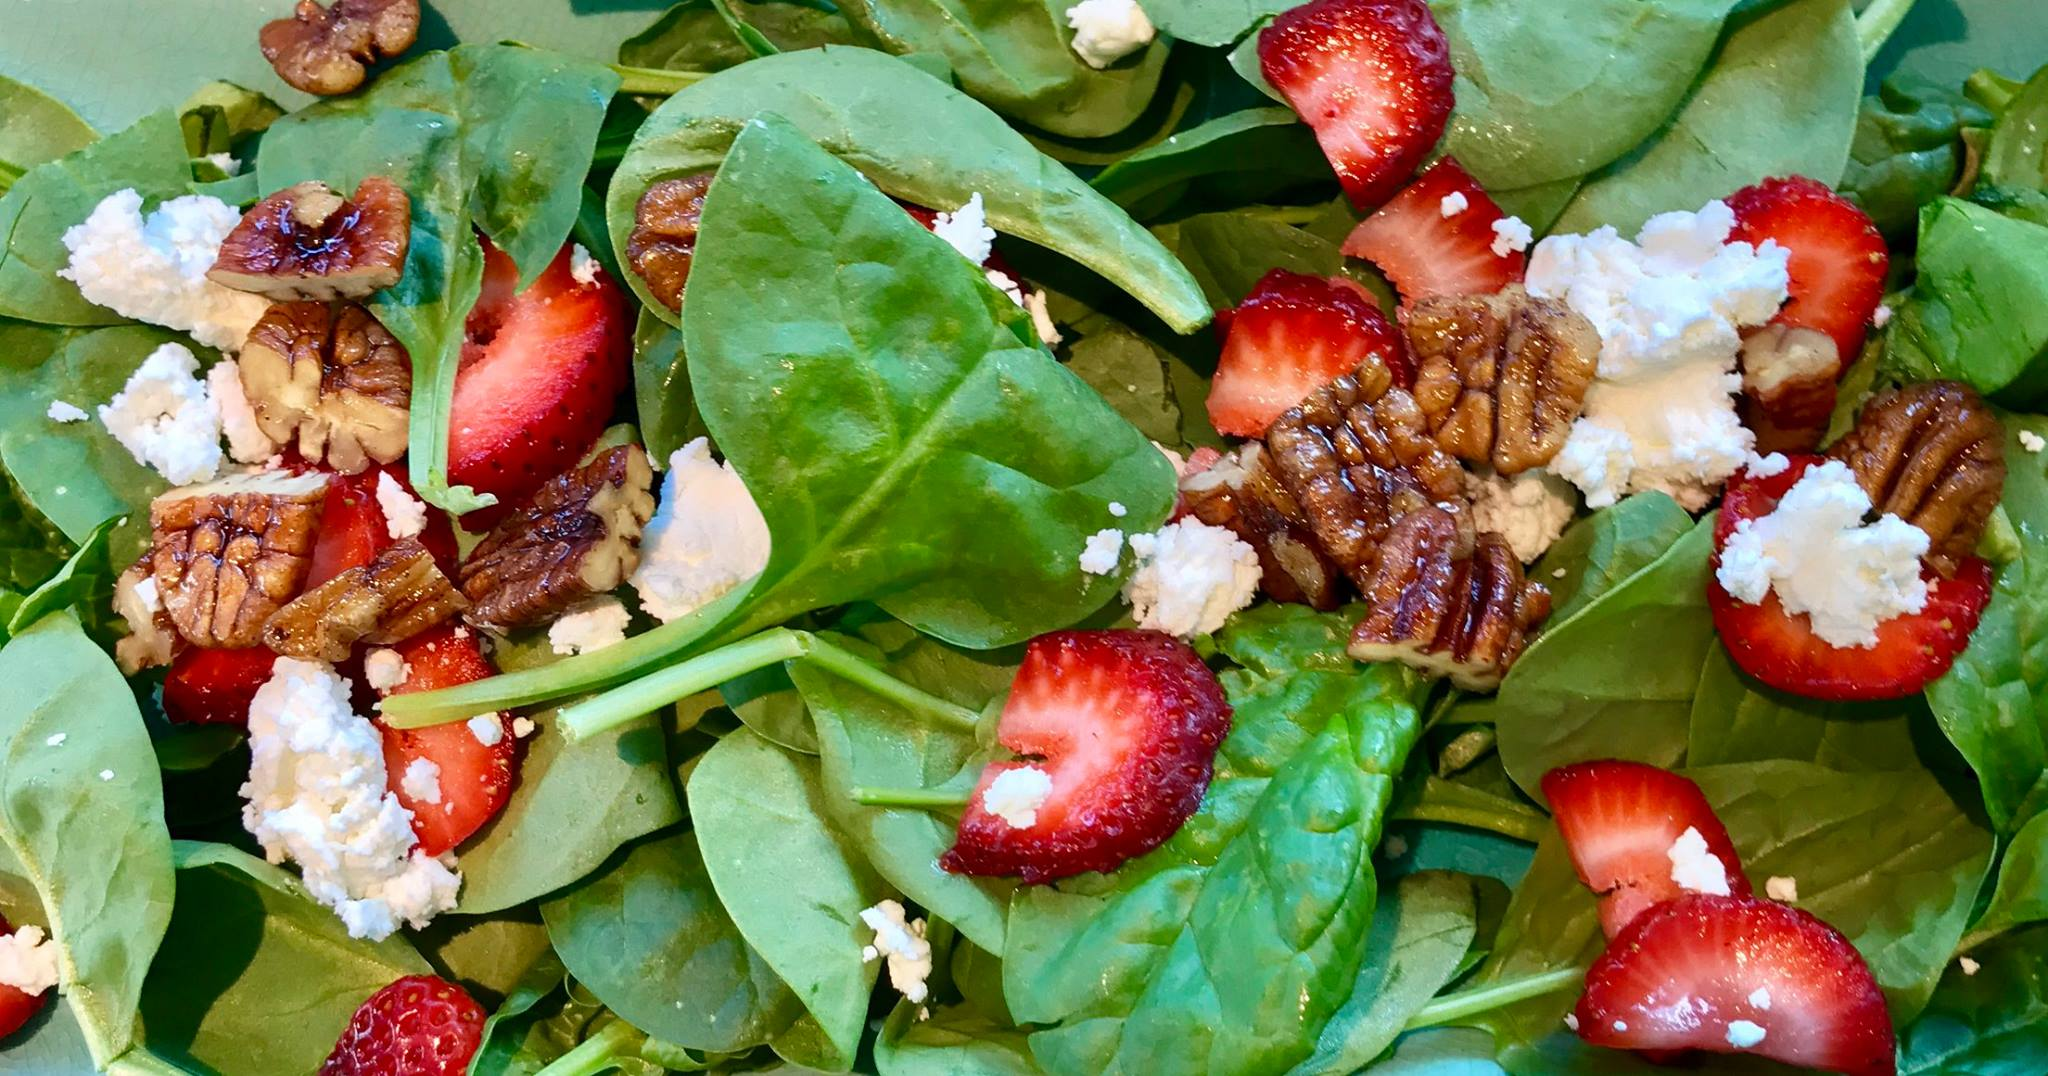 A close up of a spinach salad with strawberries, walnuts, and crumbled cheese